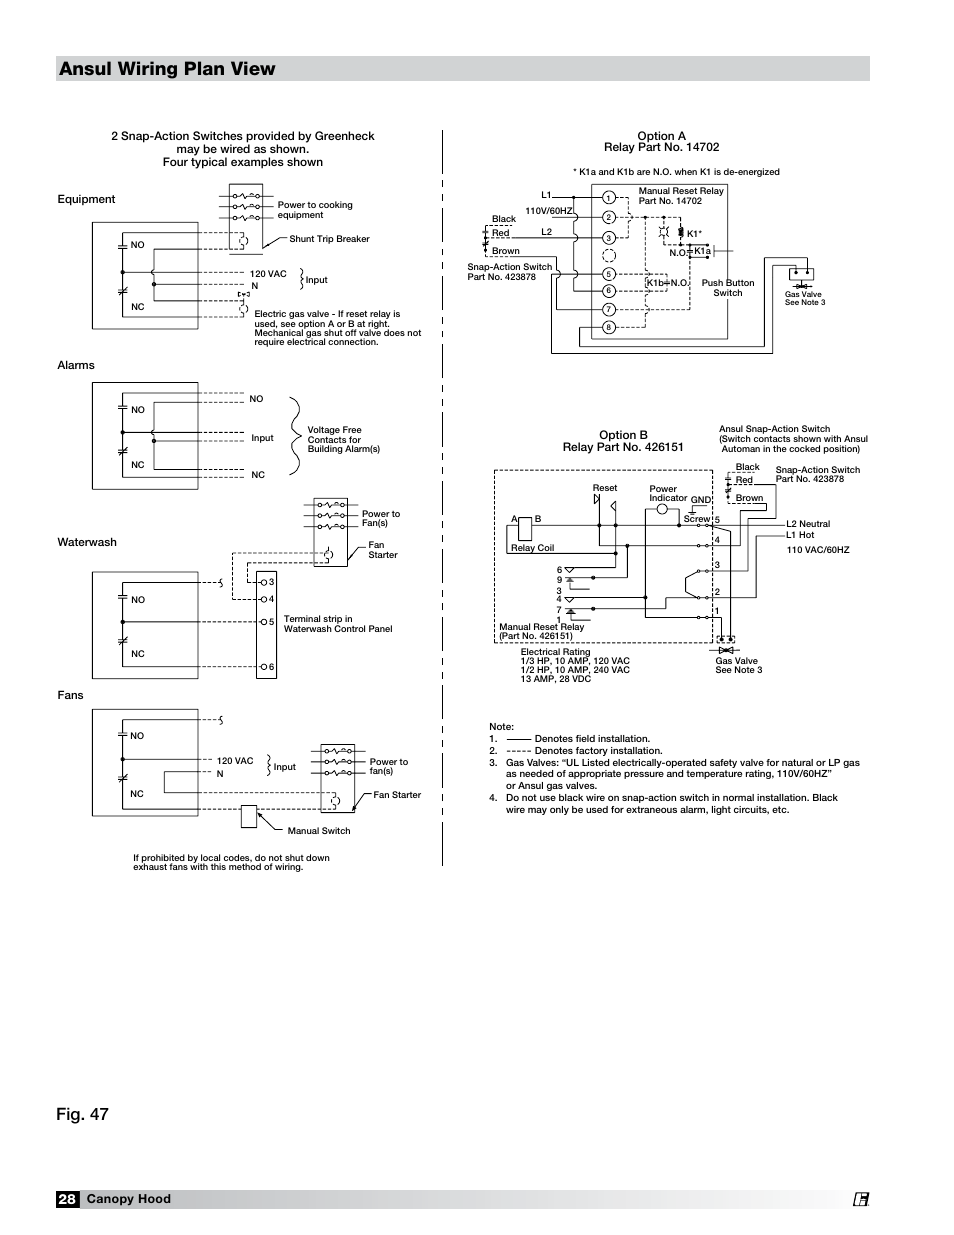 Field wiring for the ansul snap-action switch, Ansul wiring plan view, Fig.  47 | Greenheck Fan 452413 User Manual | Page 28 / 40